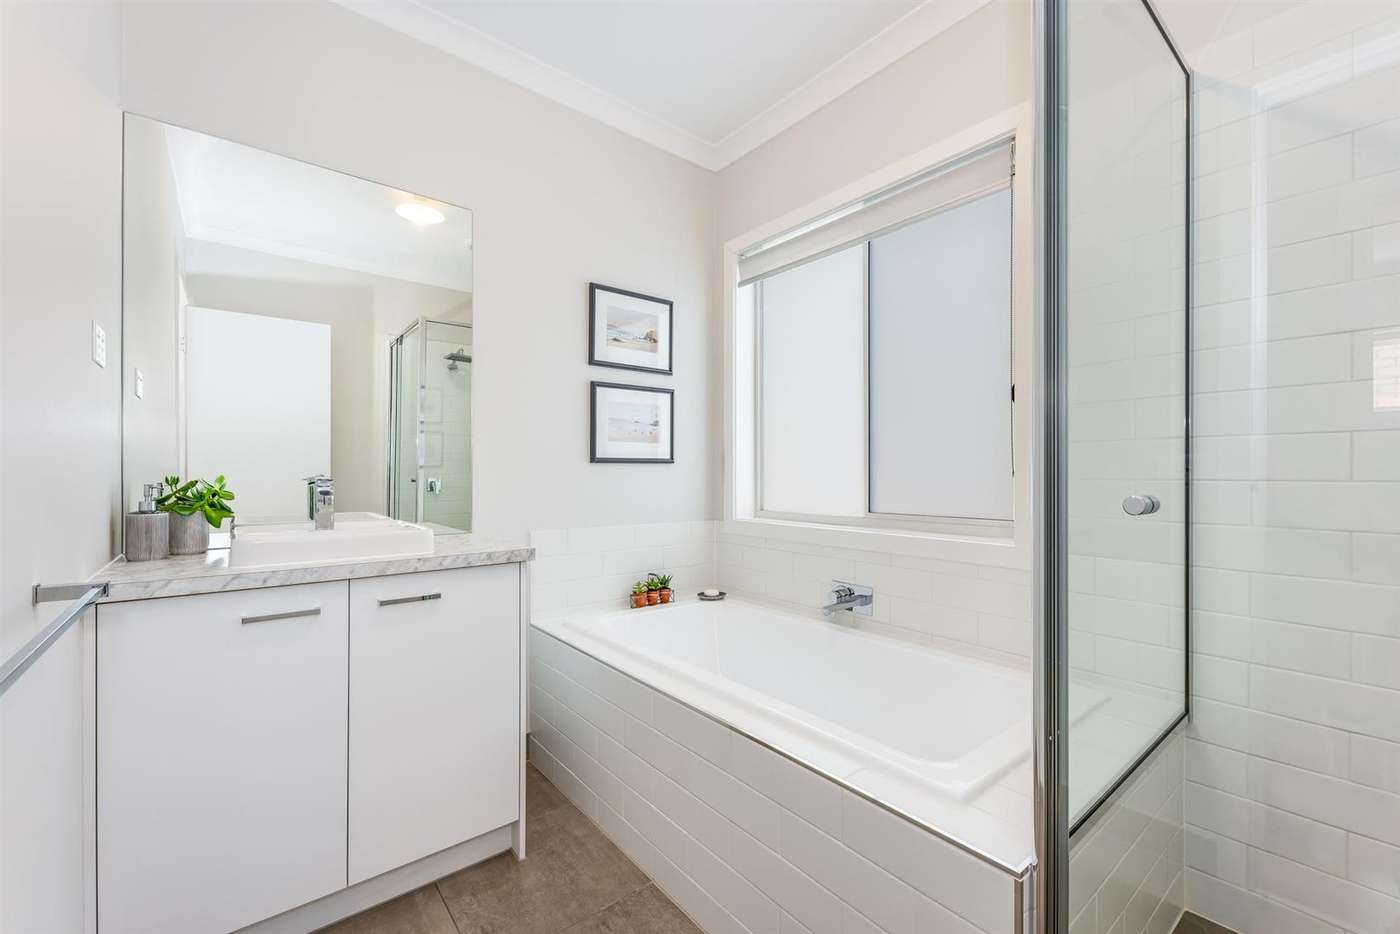 Sixth view of Homely unit listing, 146 A Matthews Road, Corio VIC 3214